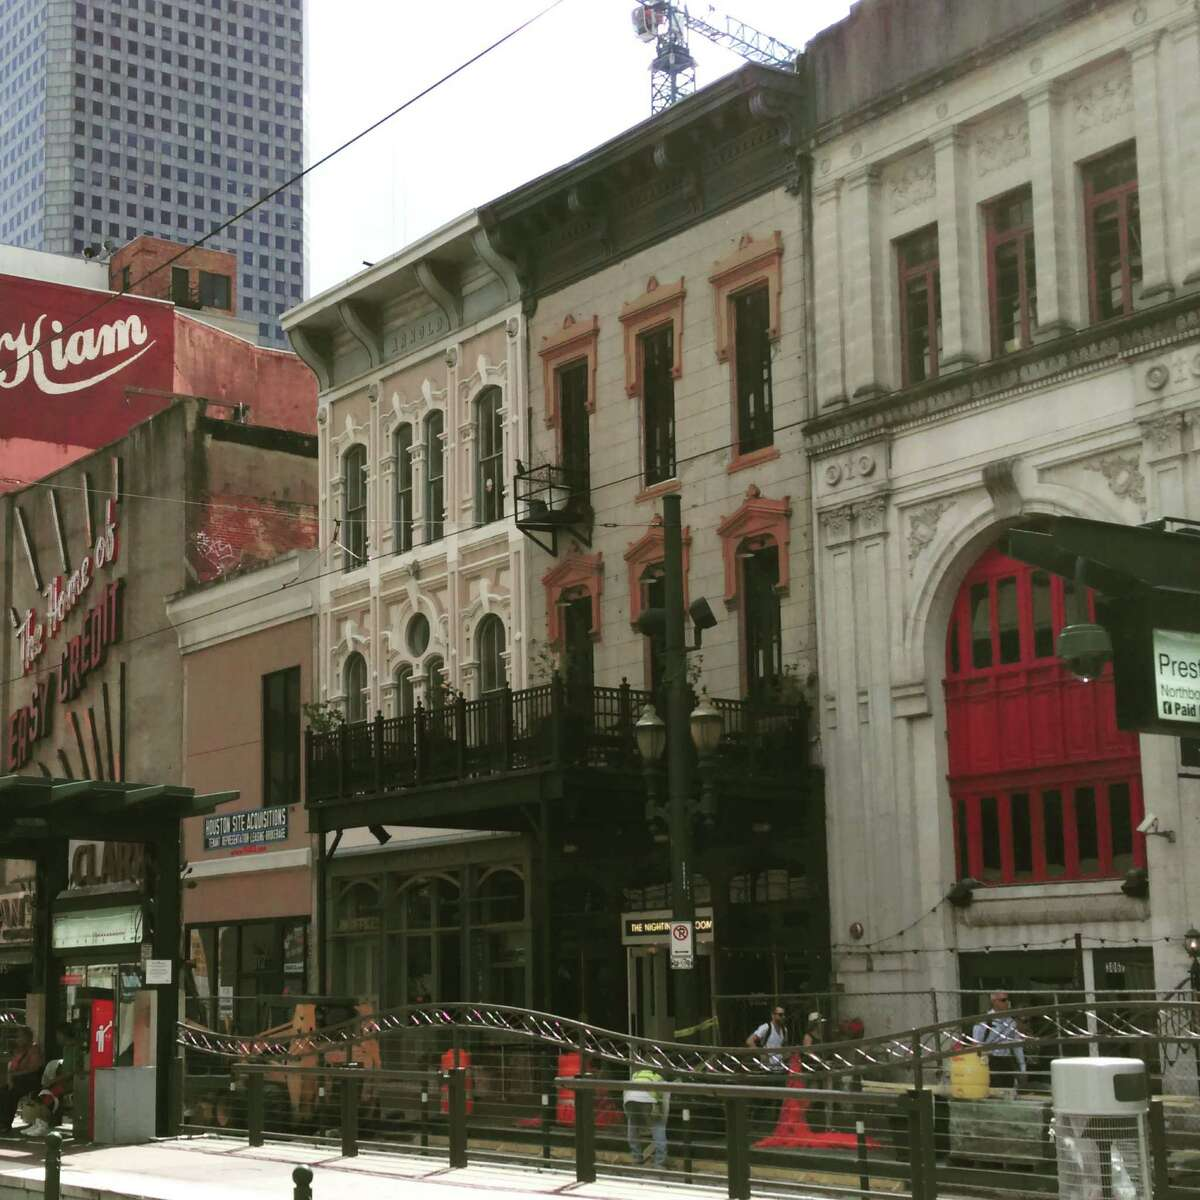 The building at 308 Main Street was designated a protected landmark by the city of Houston.